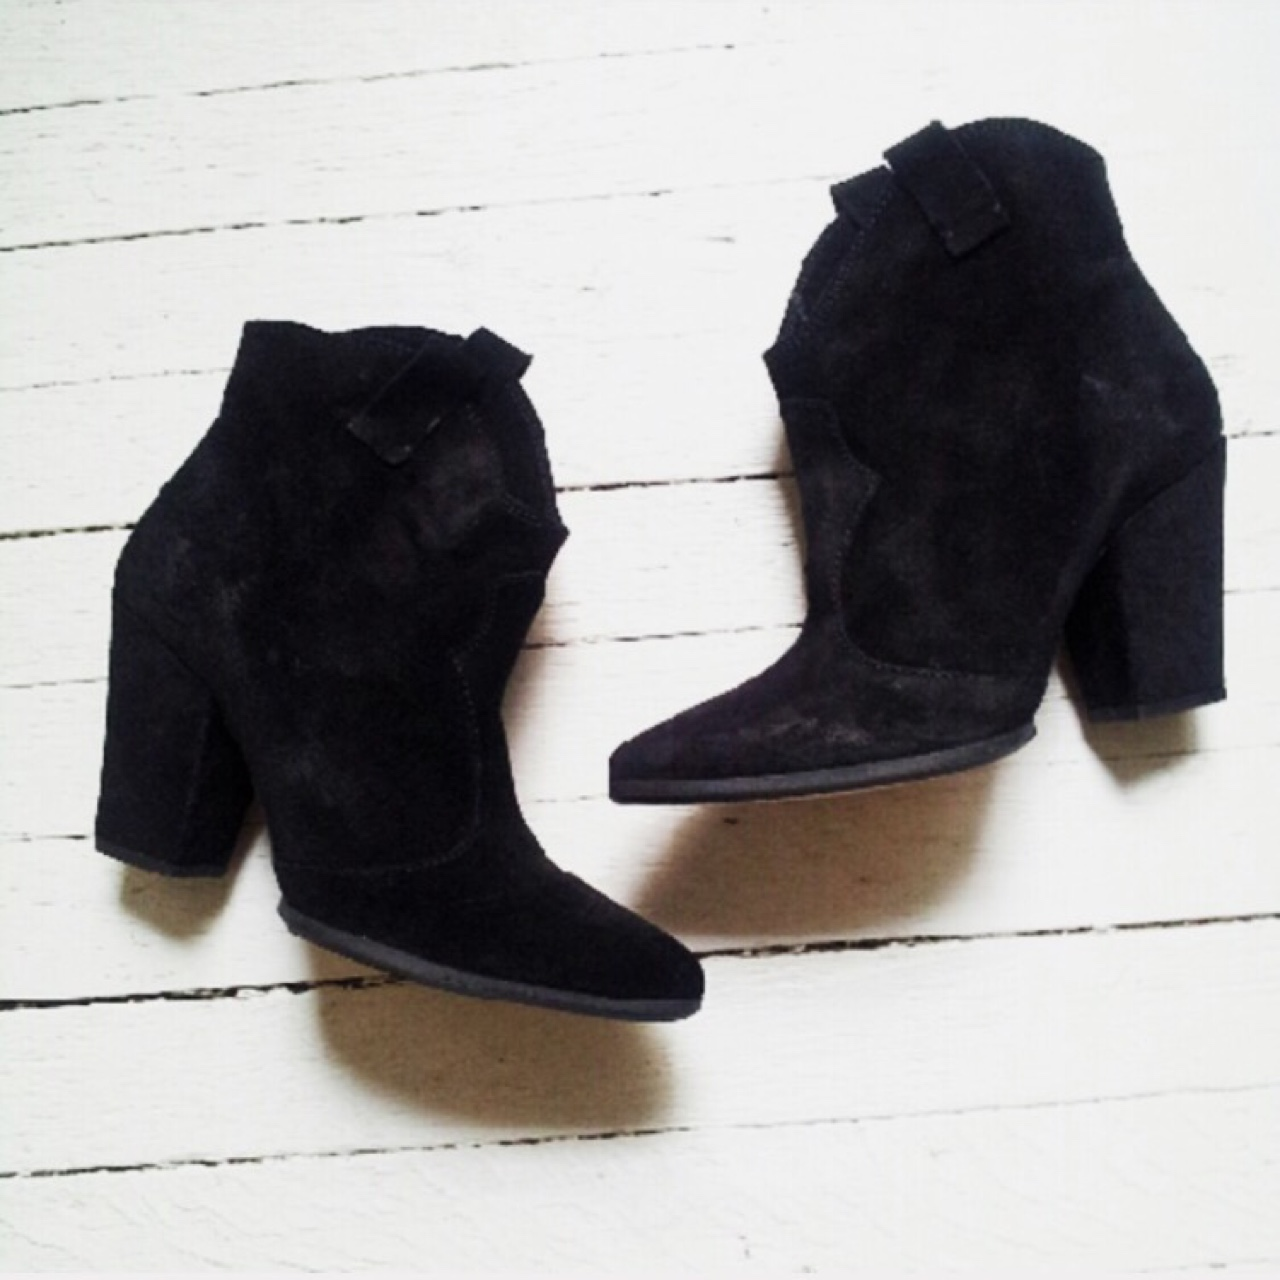 Zara Black Suede Ankle Boots with Heel